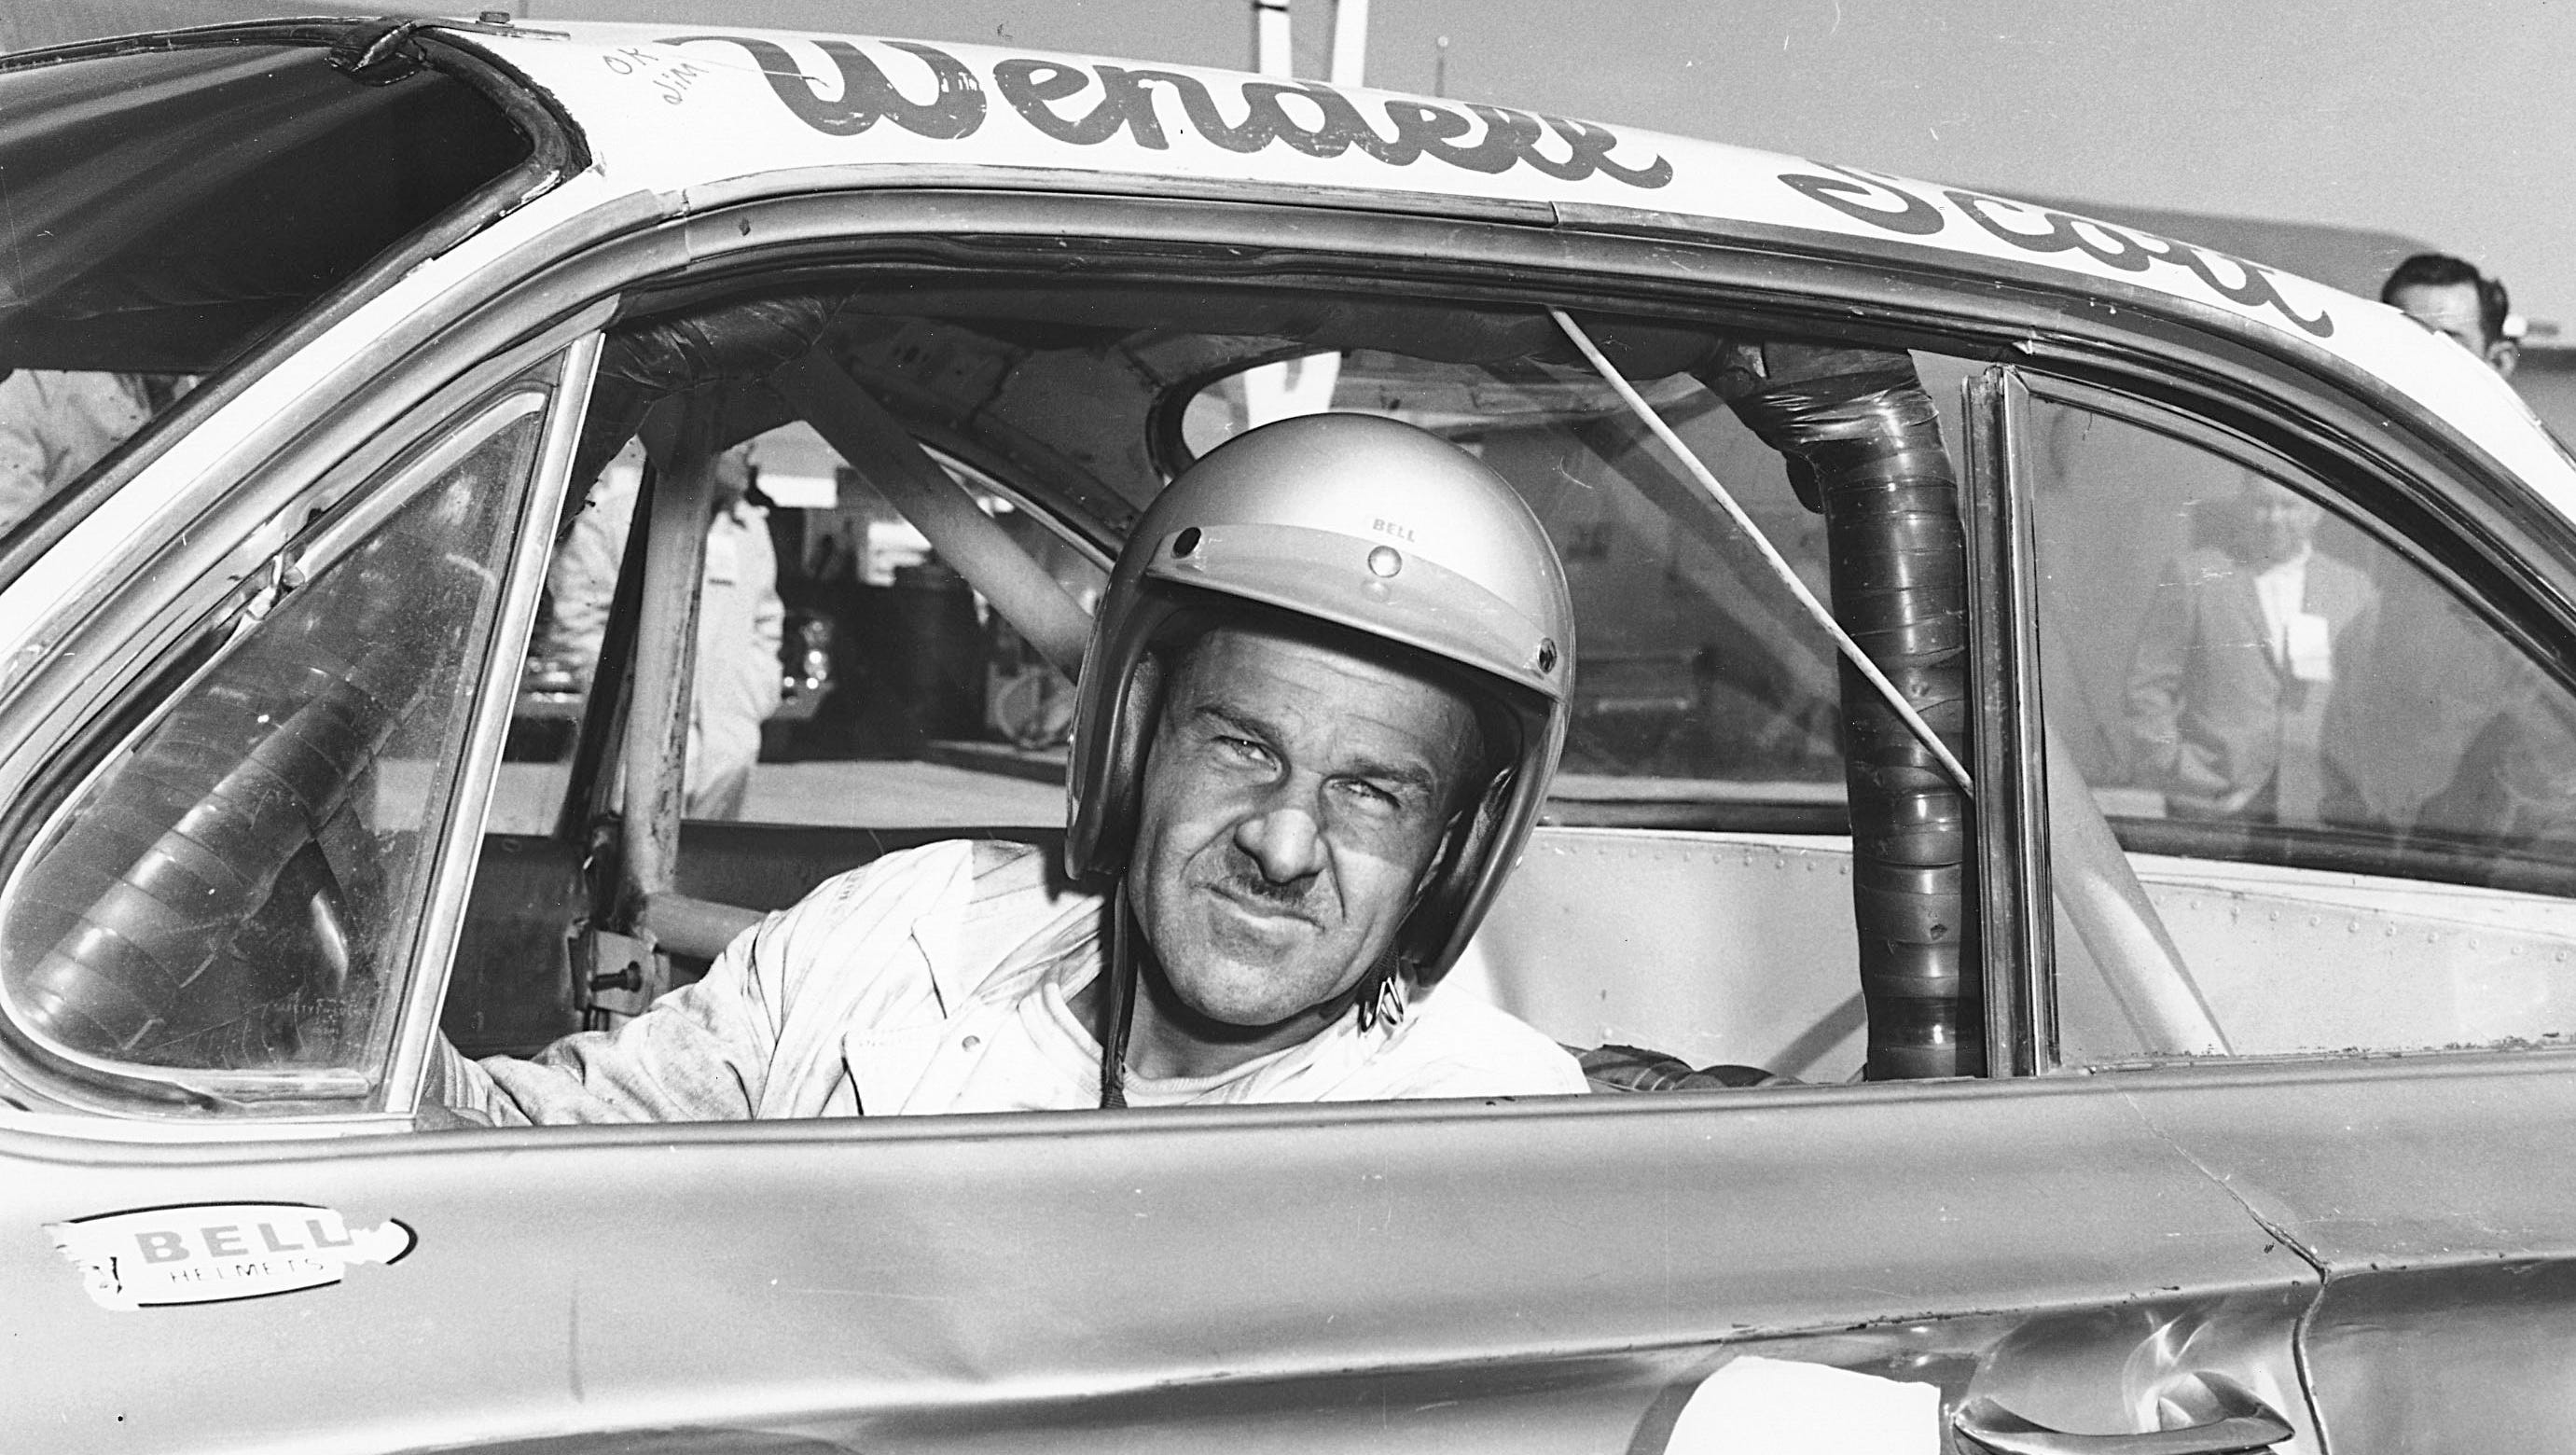 Wendell Scott was the Jackie Robinson of NASCAR, a black pioneer